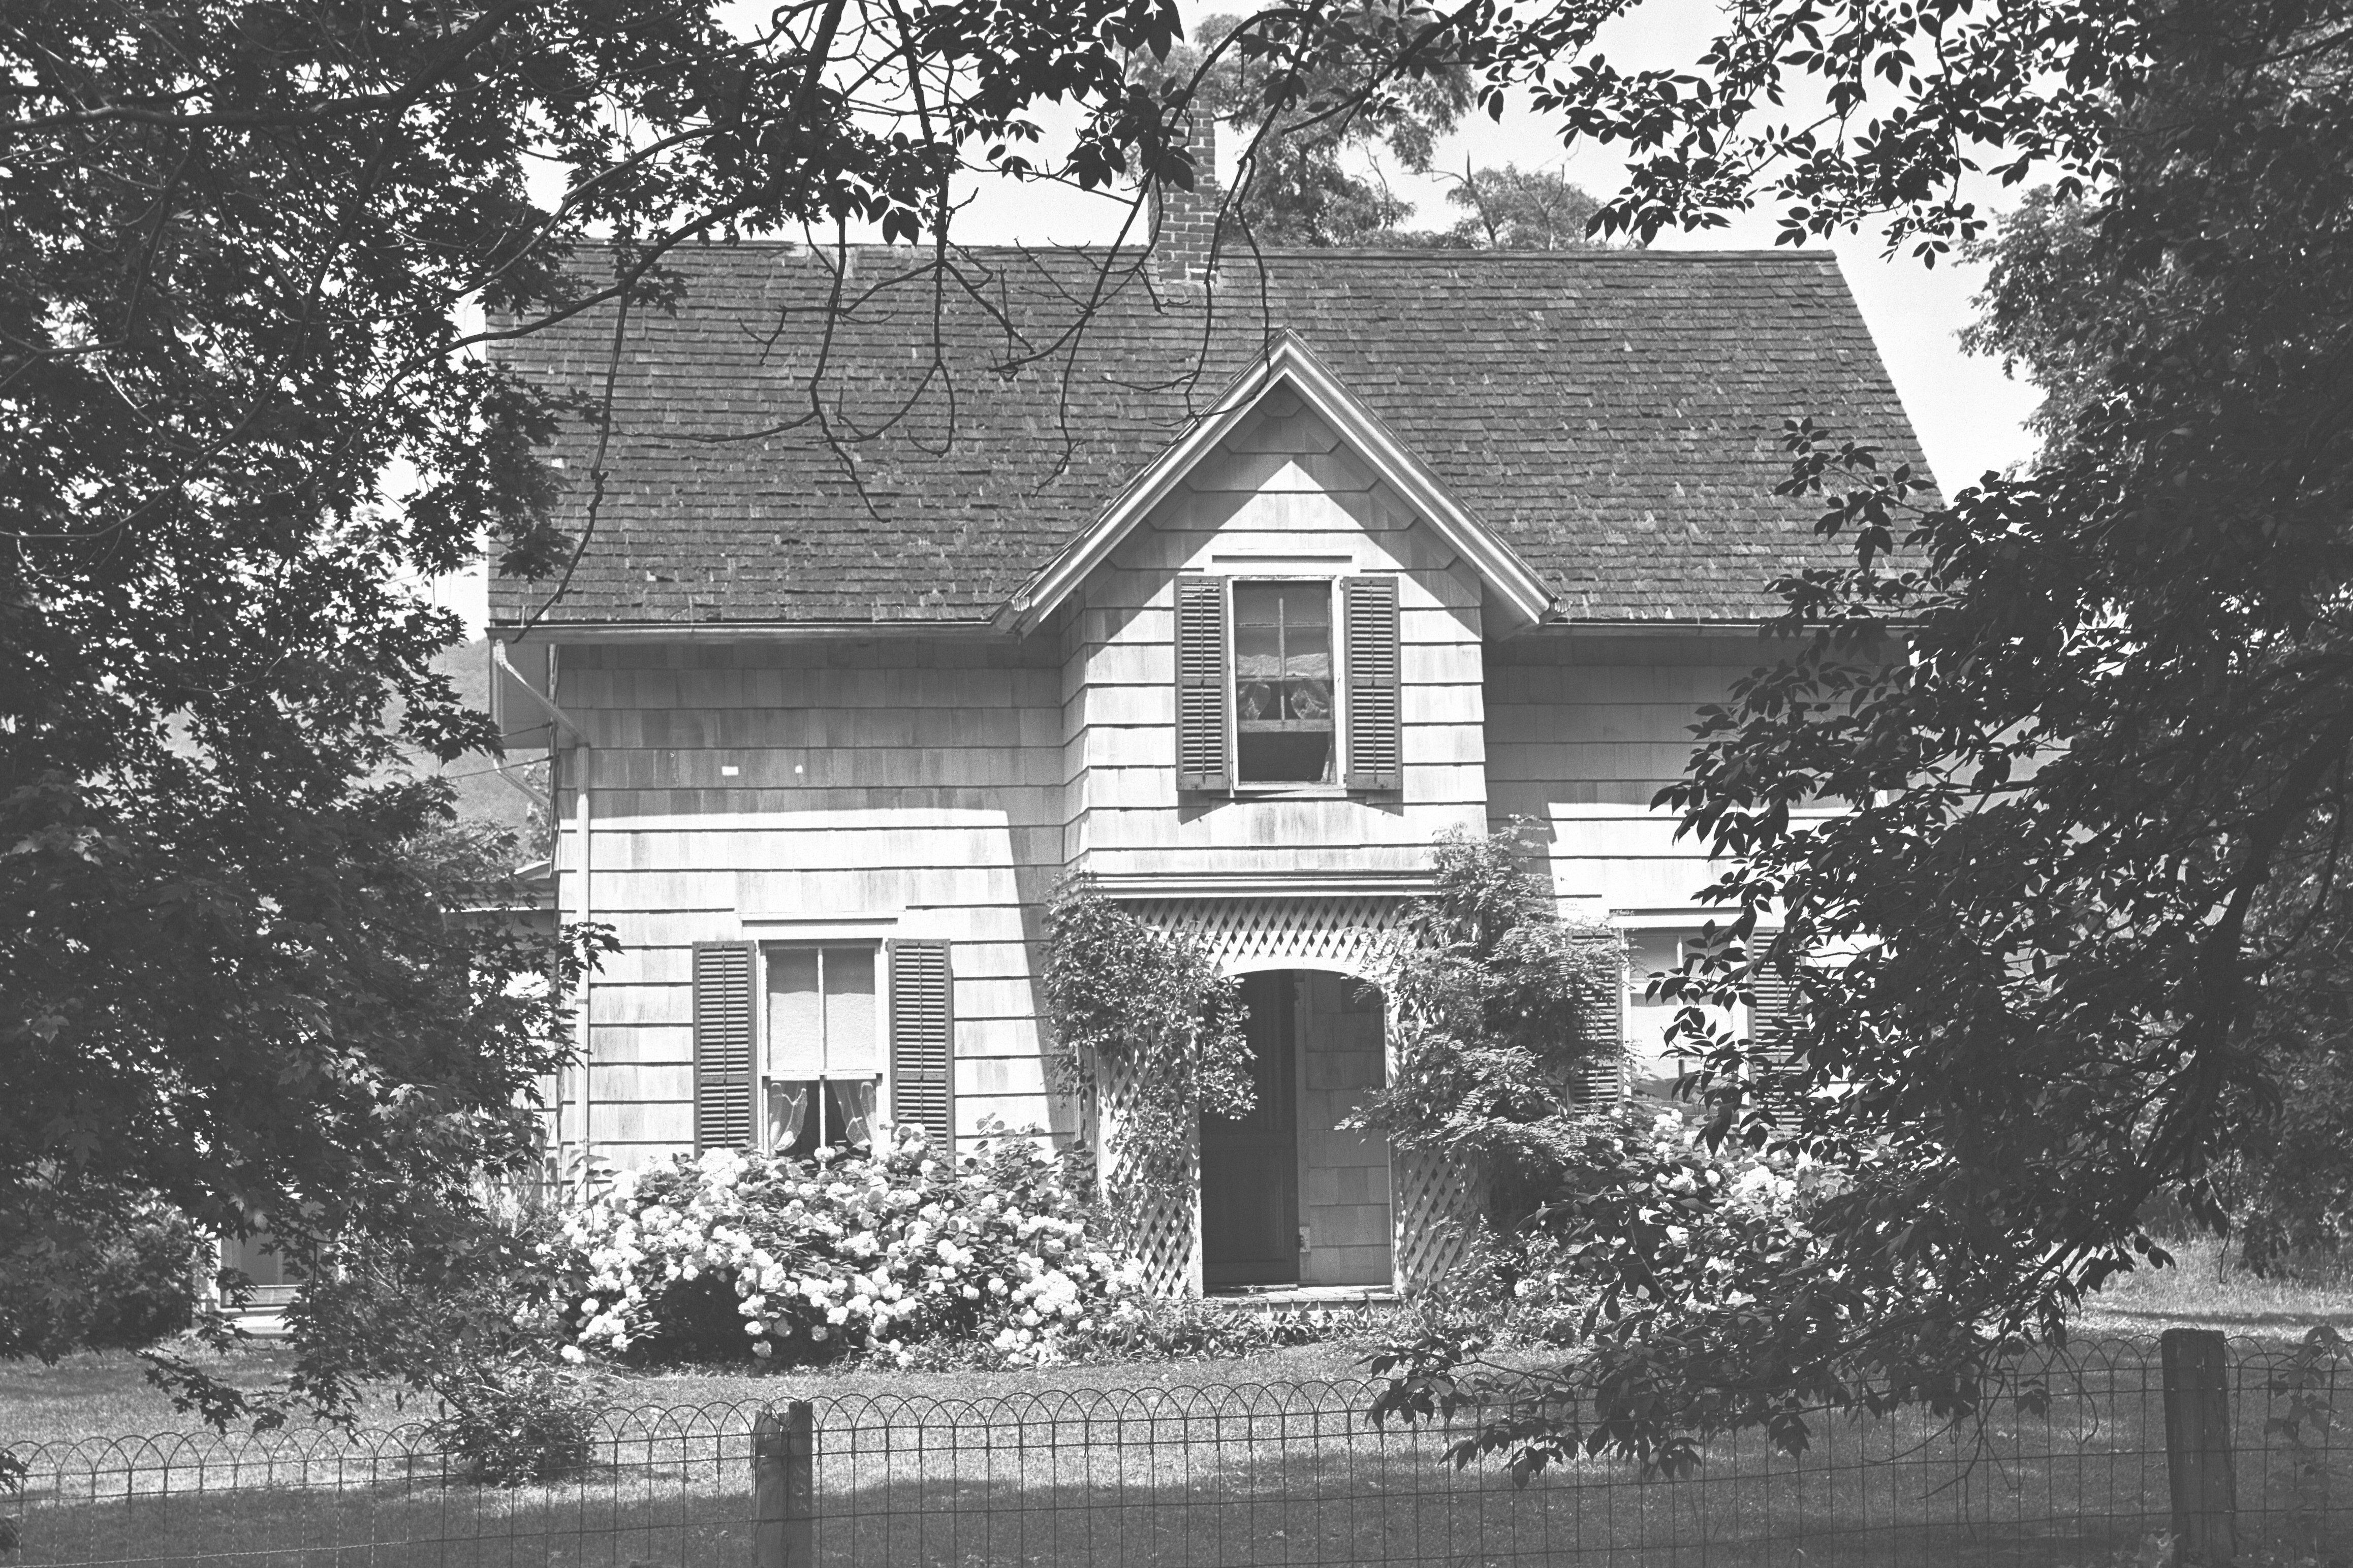 Vintage black and white photo of a two-story cottage and fence